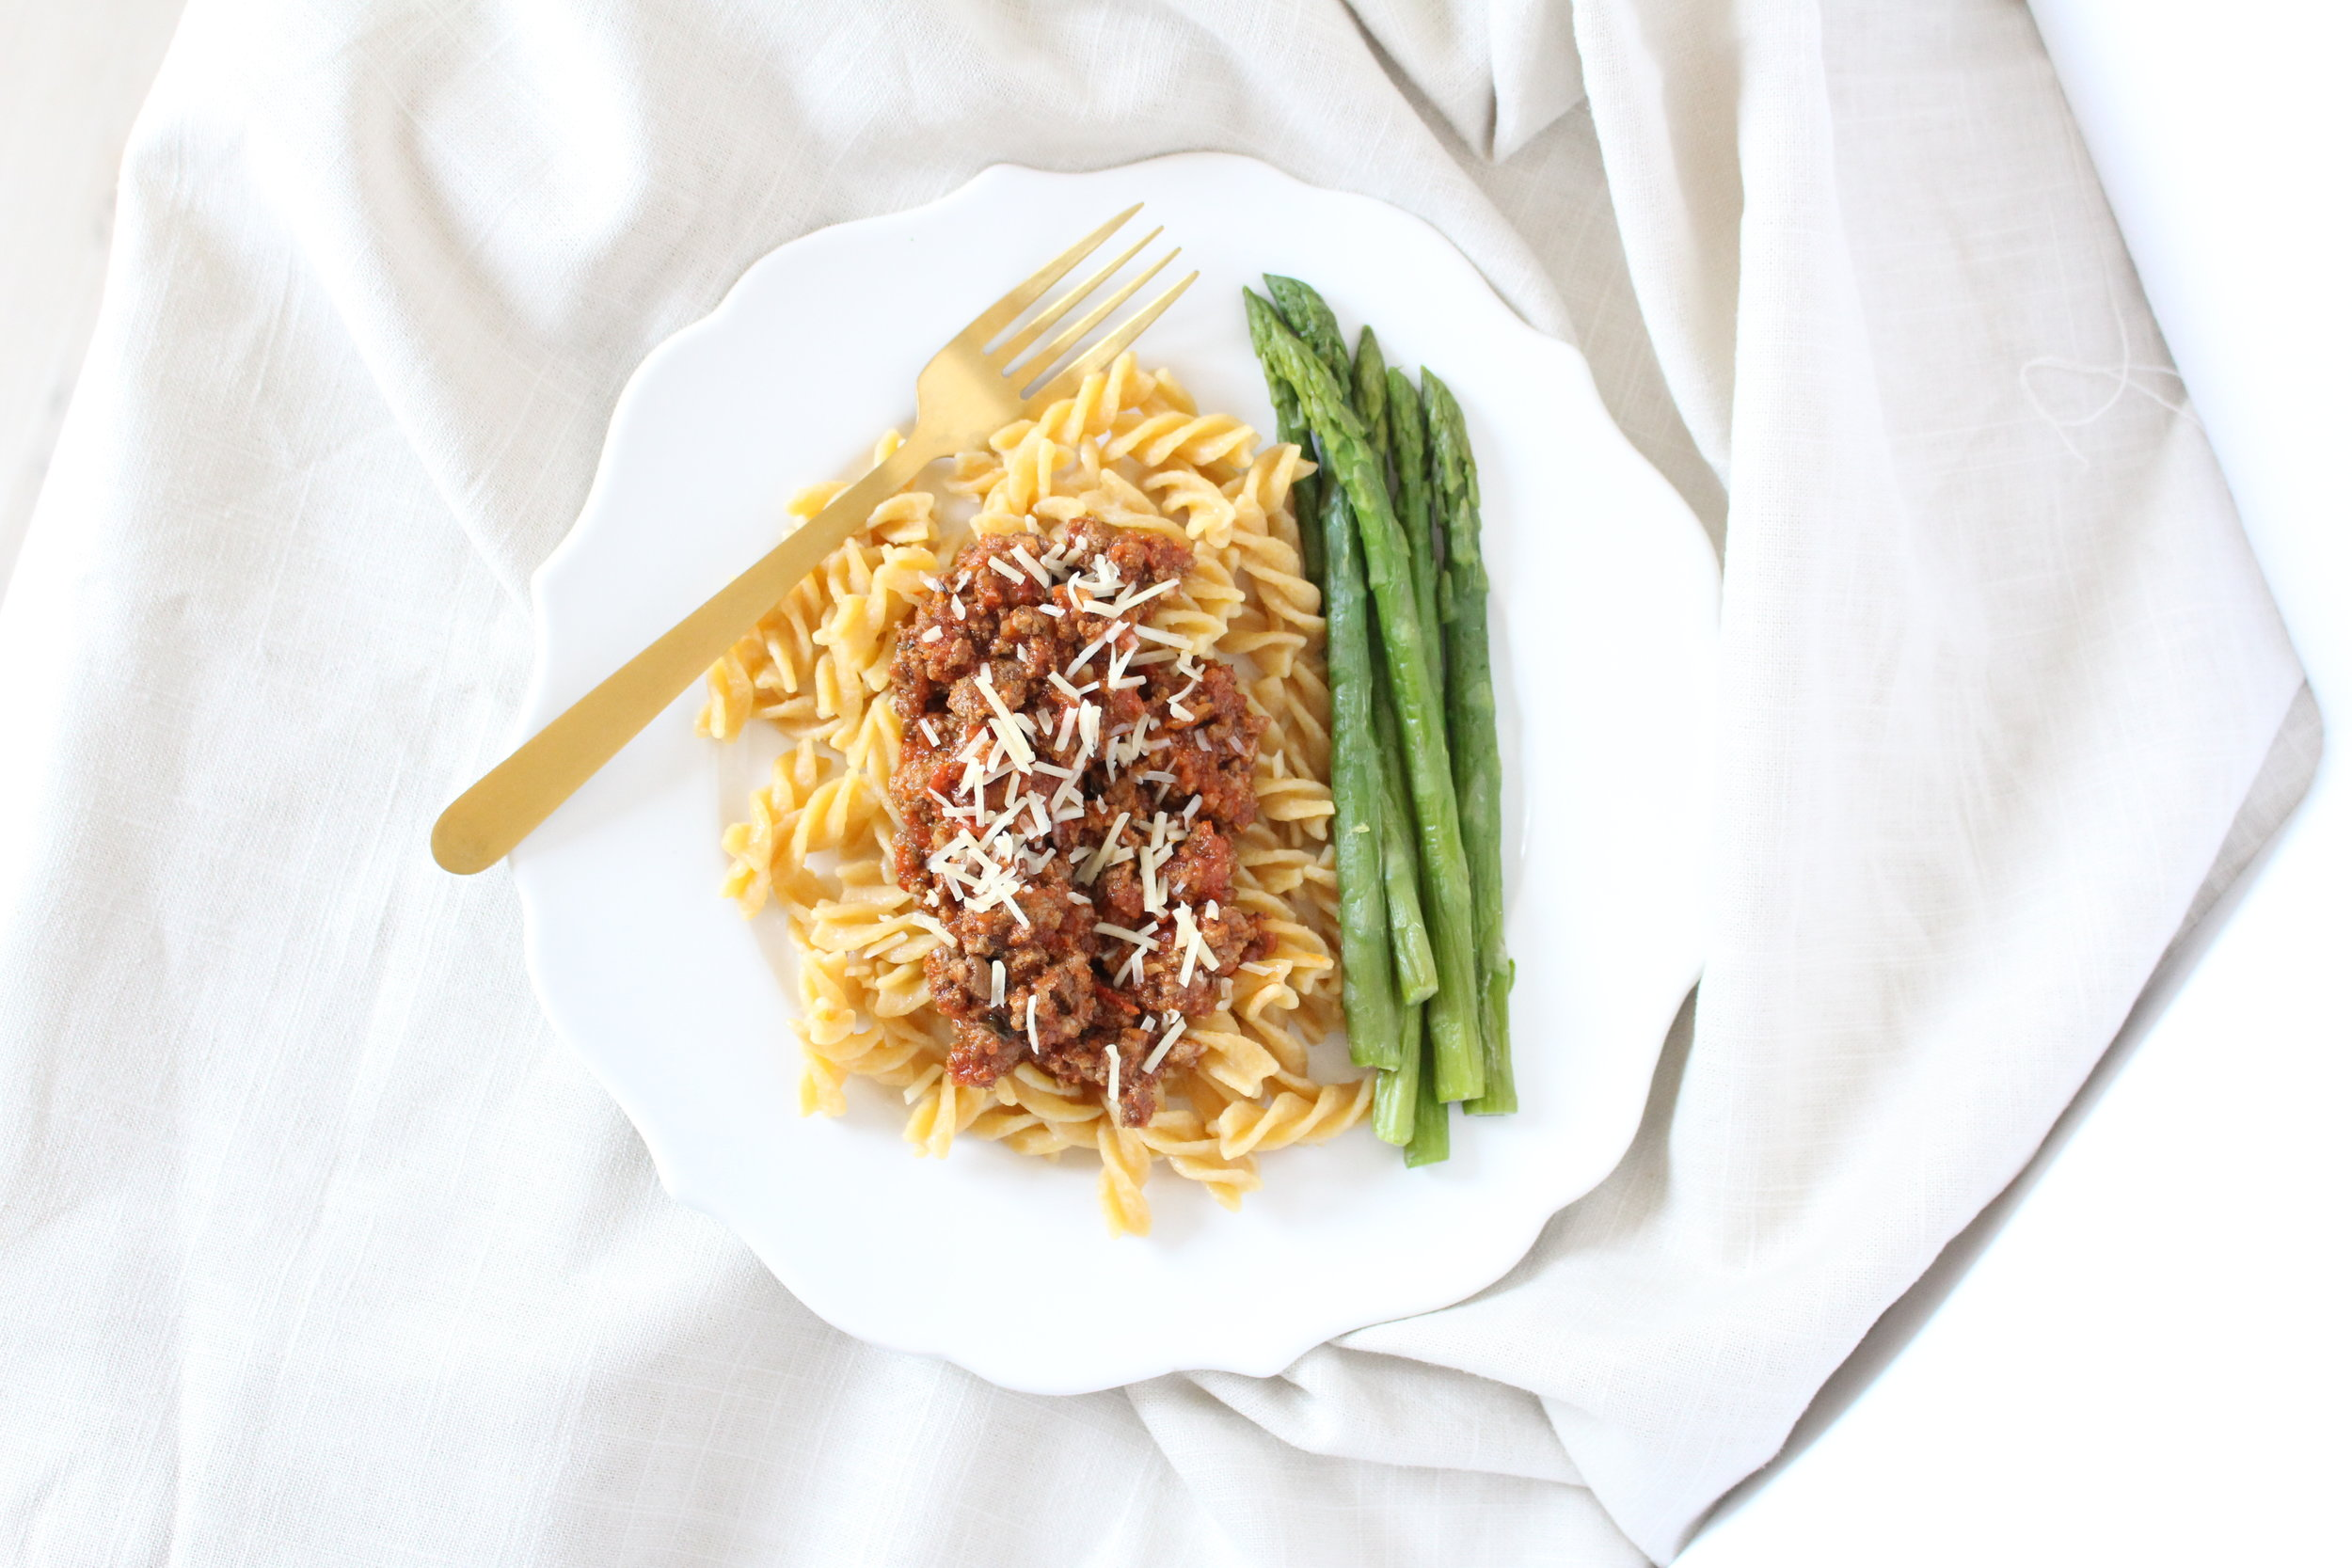 intuitive eating and gentle nutrition; chickpea spaghetti with grilled vegetables